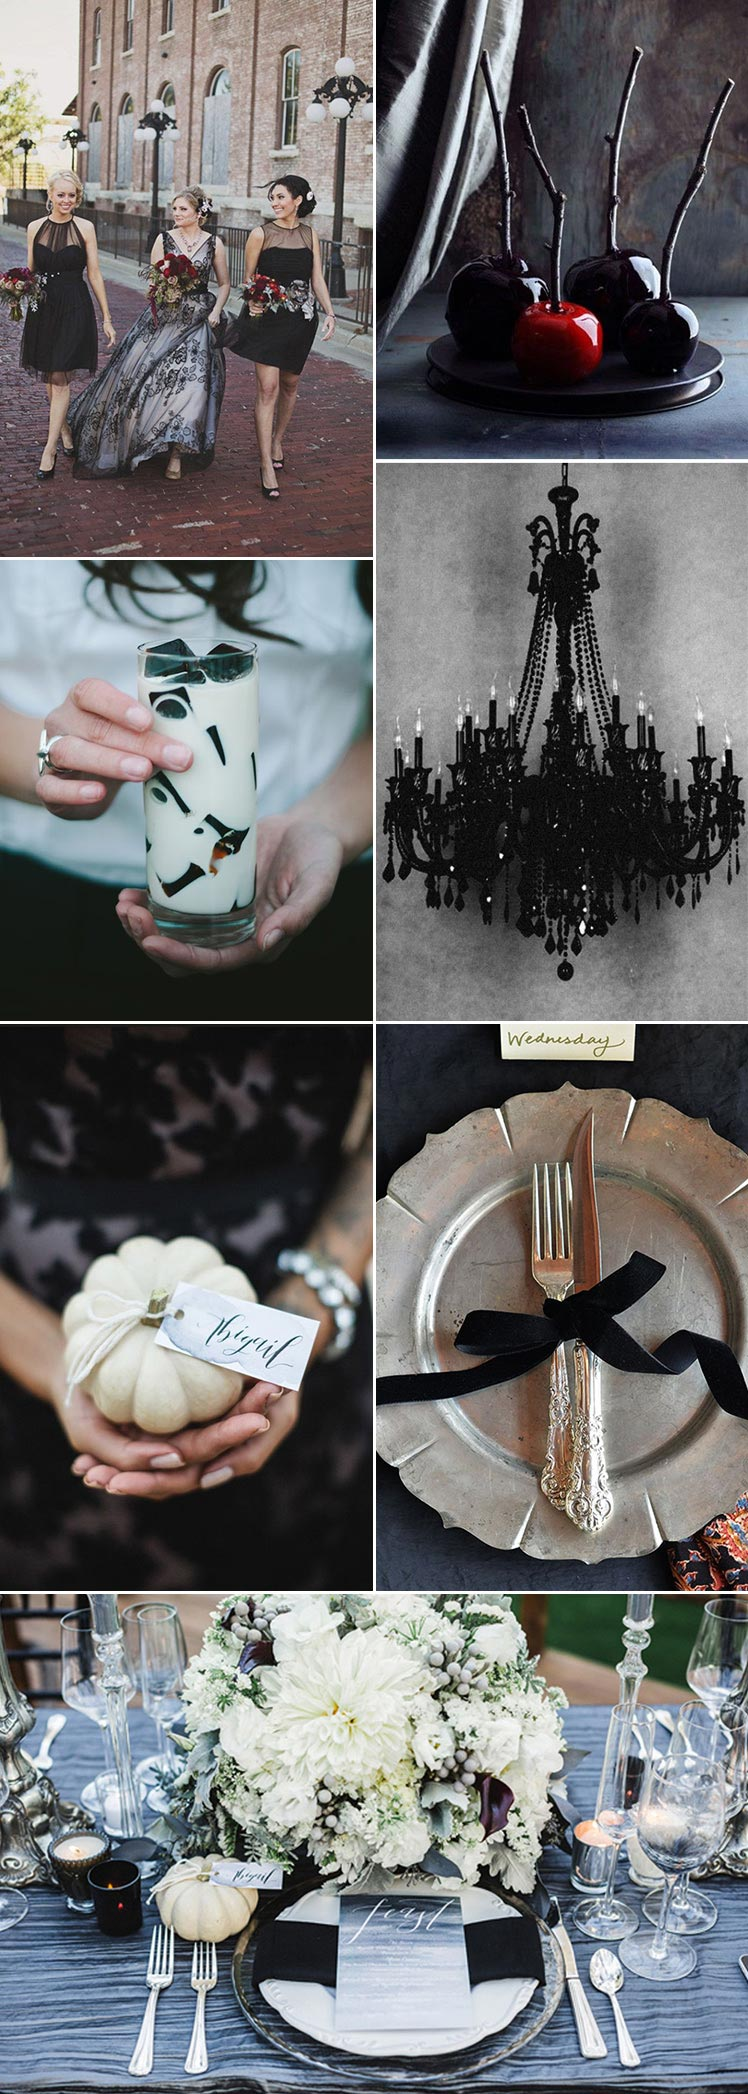 Dramatic ideas for a sensational Halloween wedding day